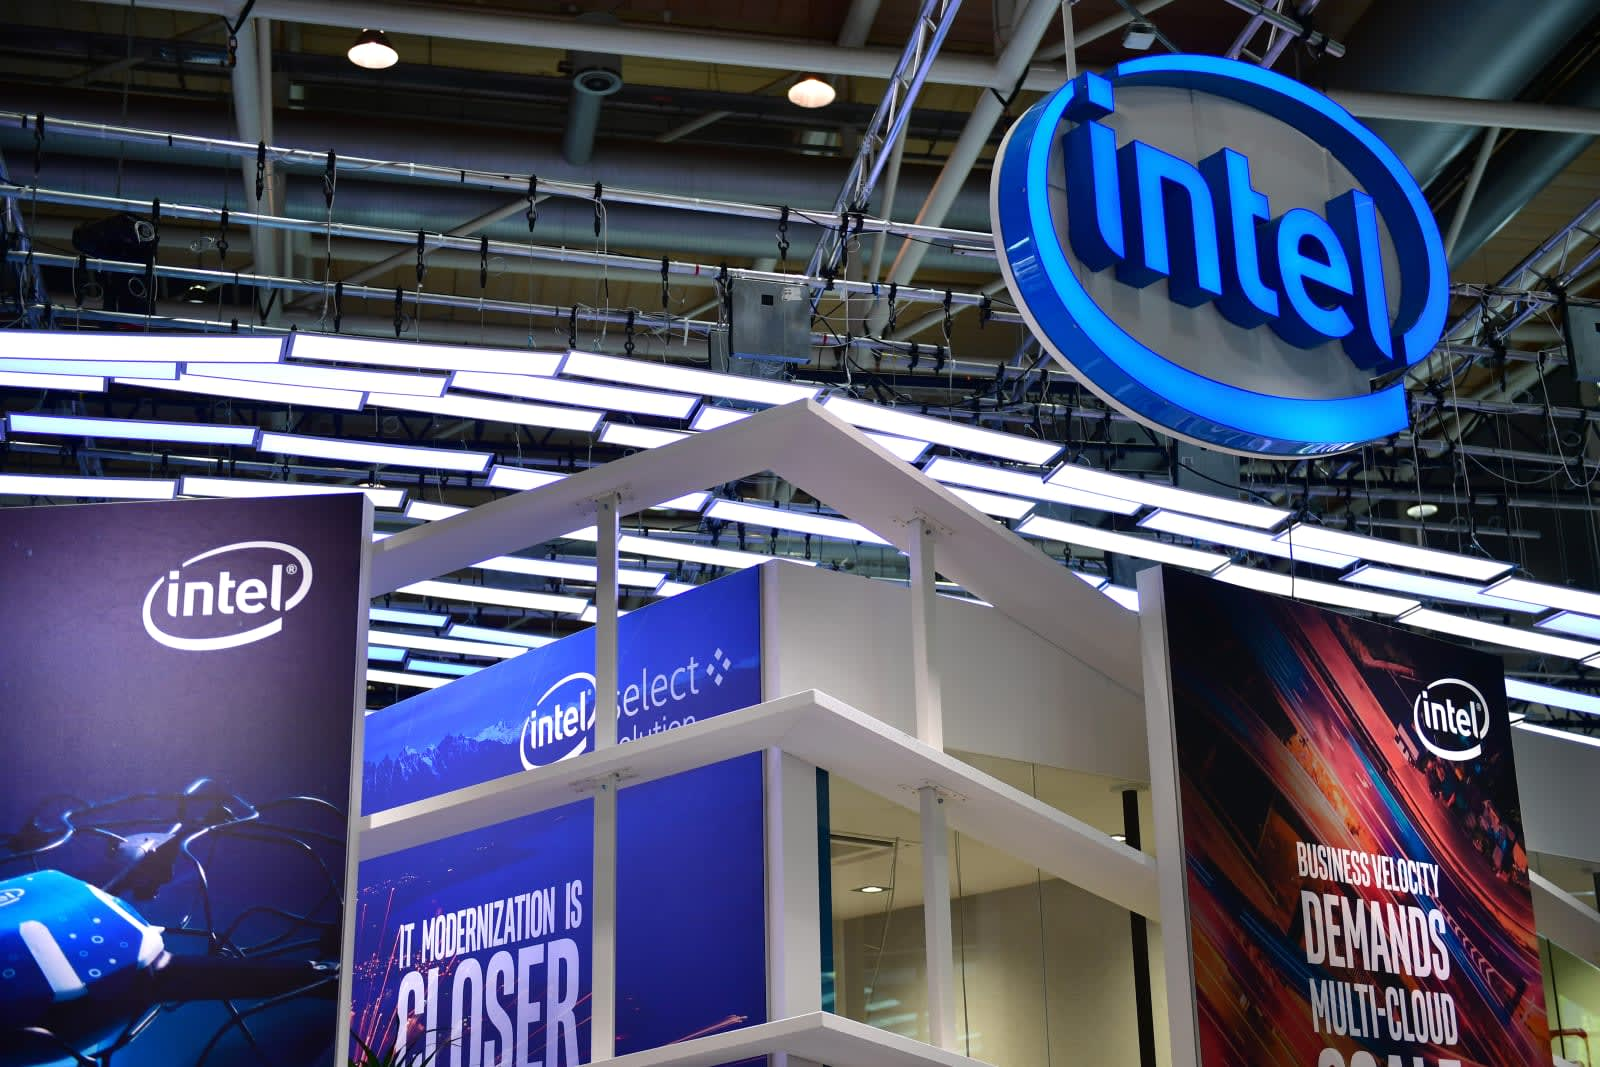 Intel's 10nm 'Ice Lake' CPUs can actually run games well in